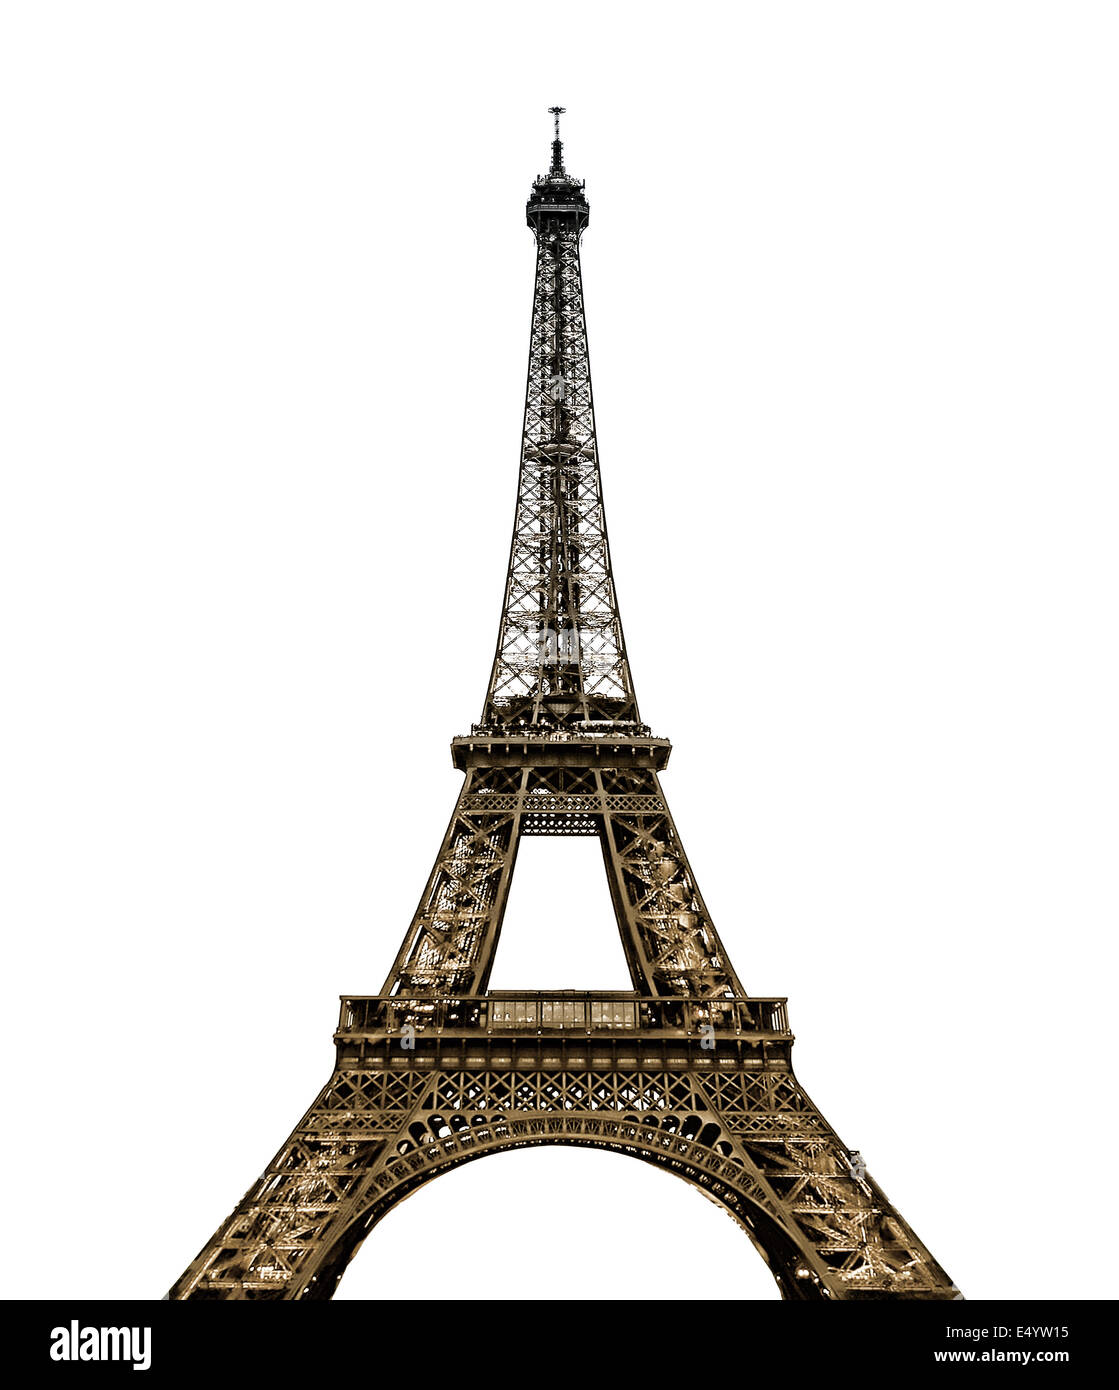 Eiffel Tower in Paris on white background - Stock Image